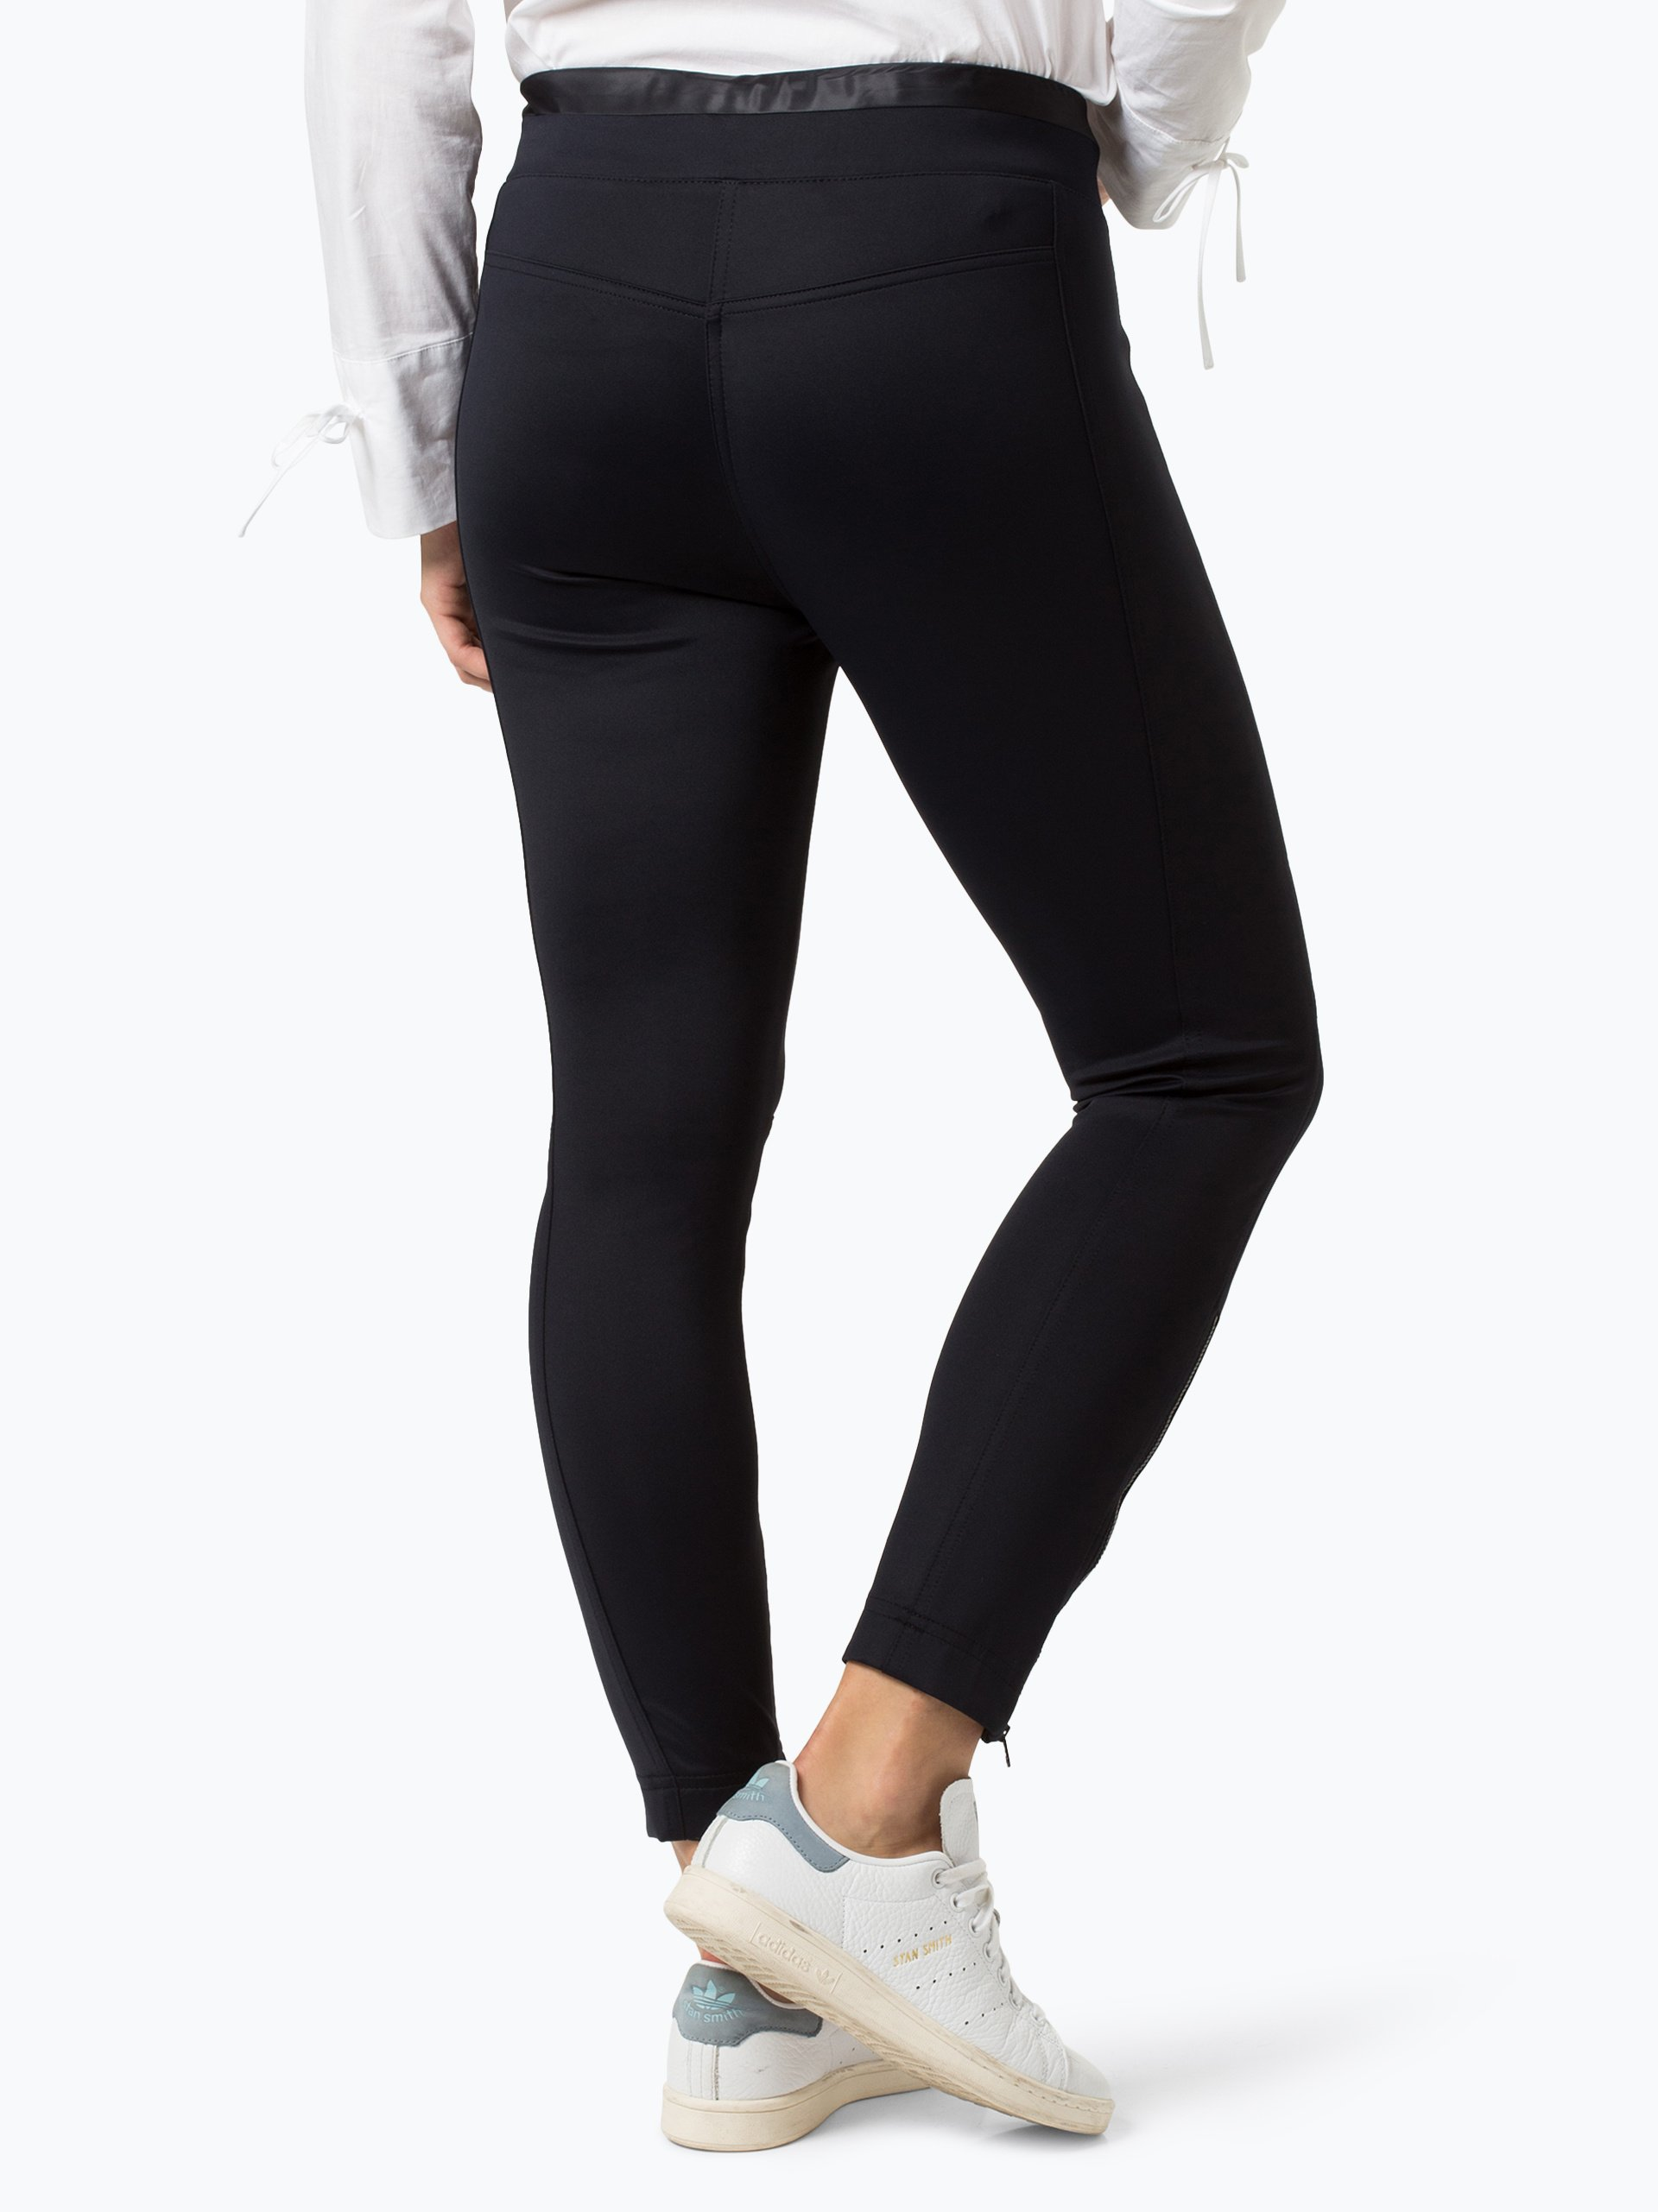 Cambio Damen Sportswear Leggings - Energy